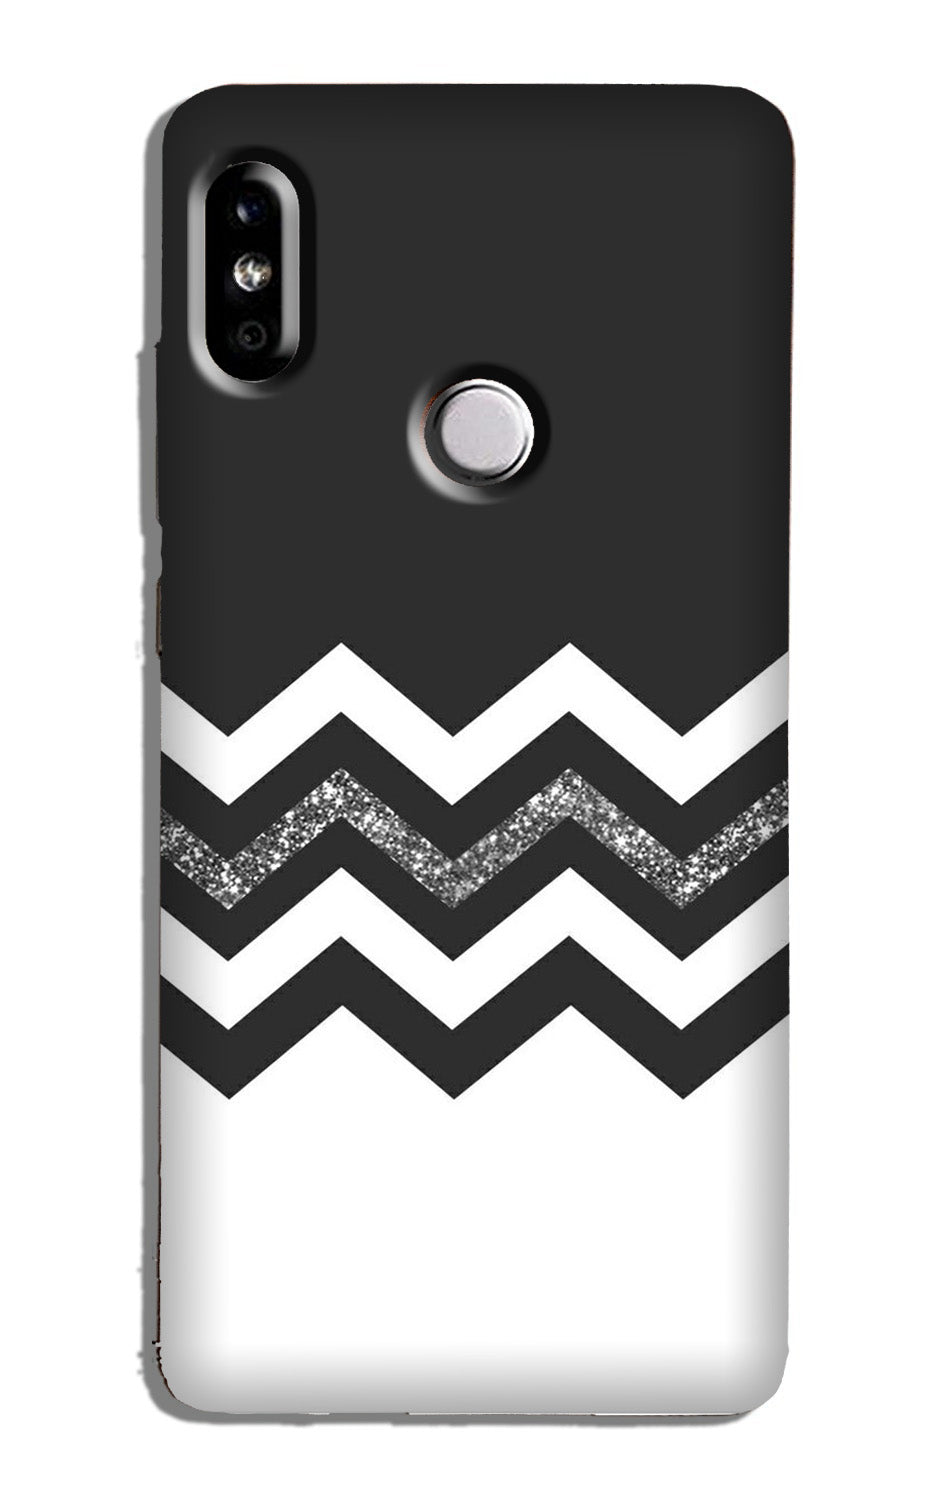 Black white Pattern Case for Redmi 6 Pro